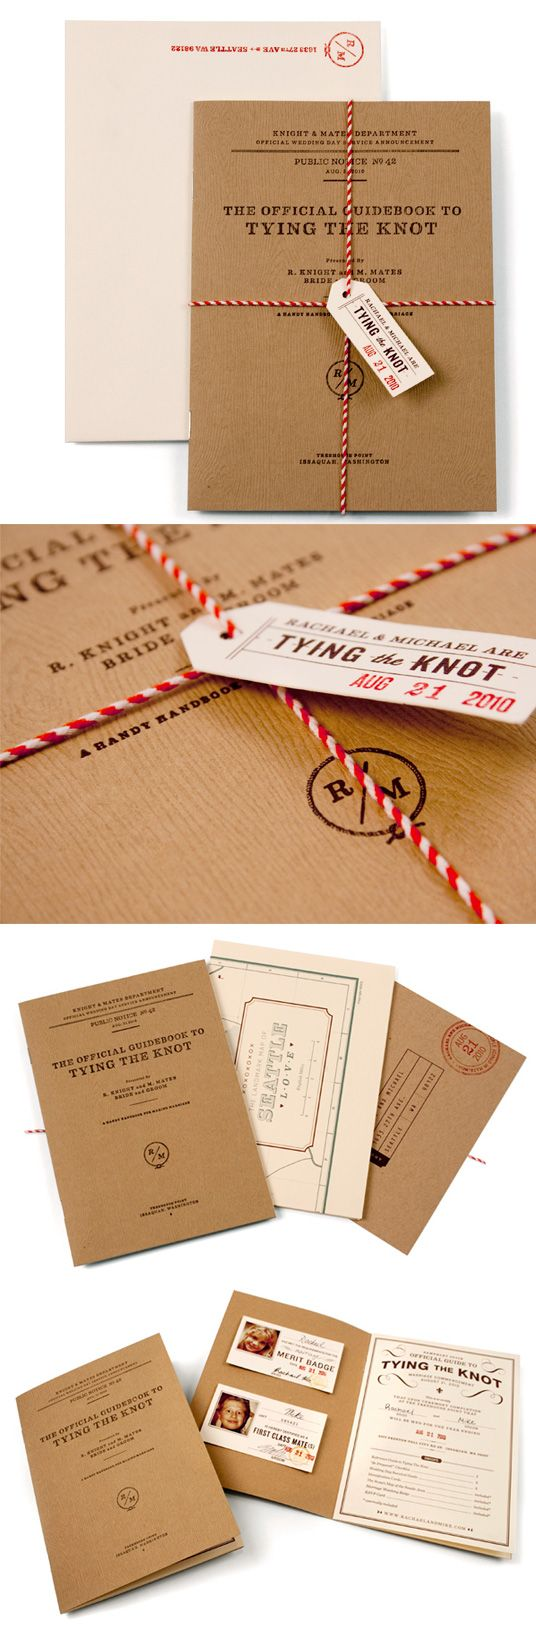 tying the knot: Tags, Baker Twine, Kraft Paper, Brown Paper, Ties The Knot, Invitations Ideas, Tying The Knots, Wedding Invitations Design, Fields